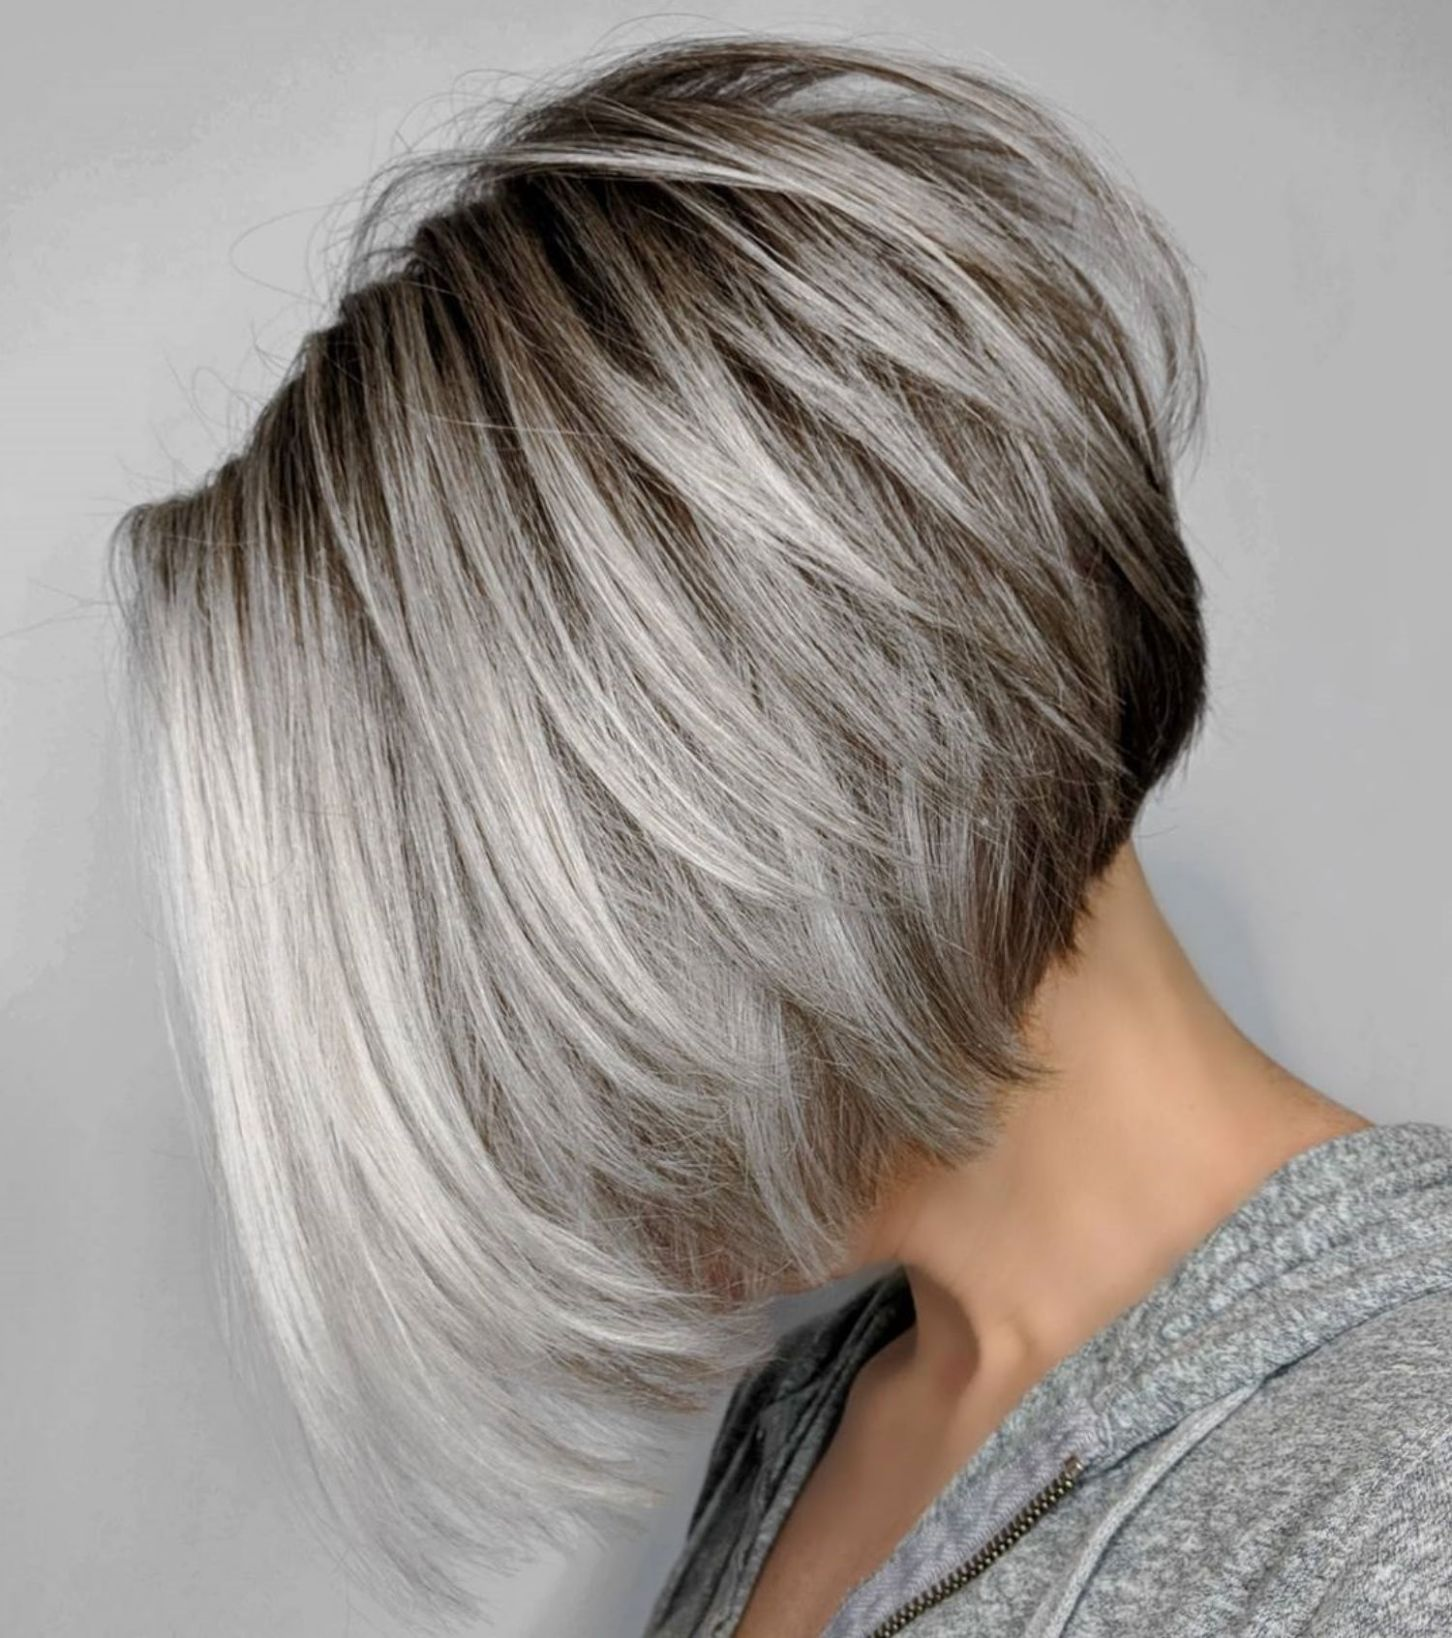 60 Best Short Bob Haircuts And Hairstyles For Women Grey Bob Hairstyles Latest Bob Hairstyles Gray Balayage